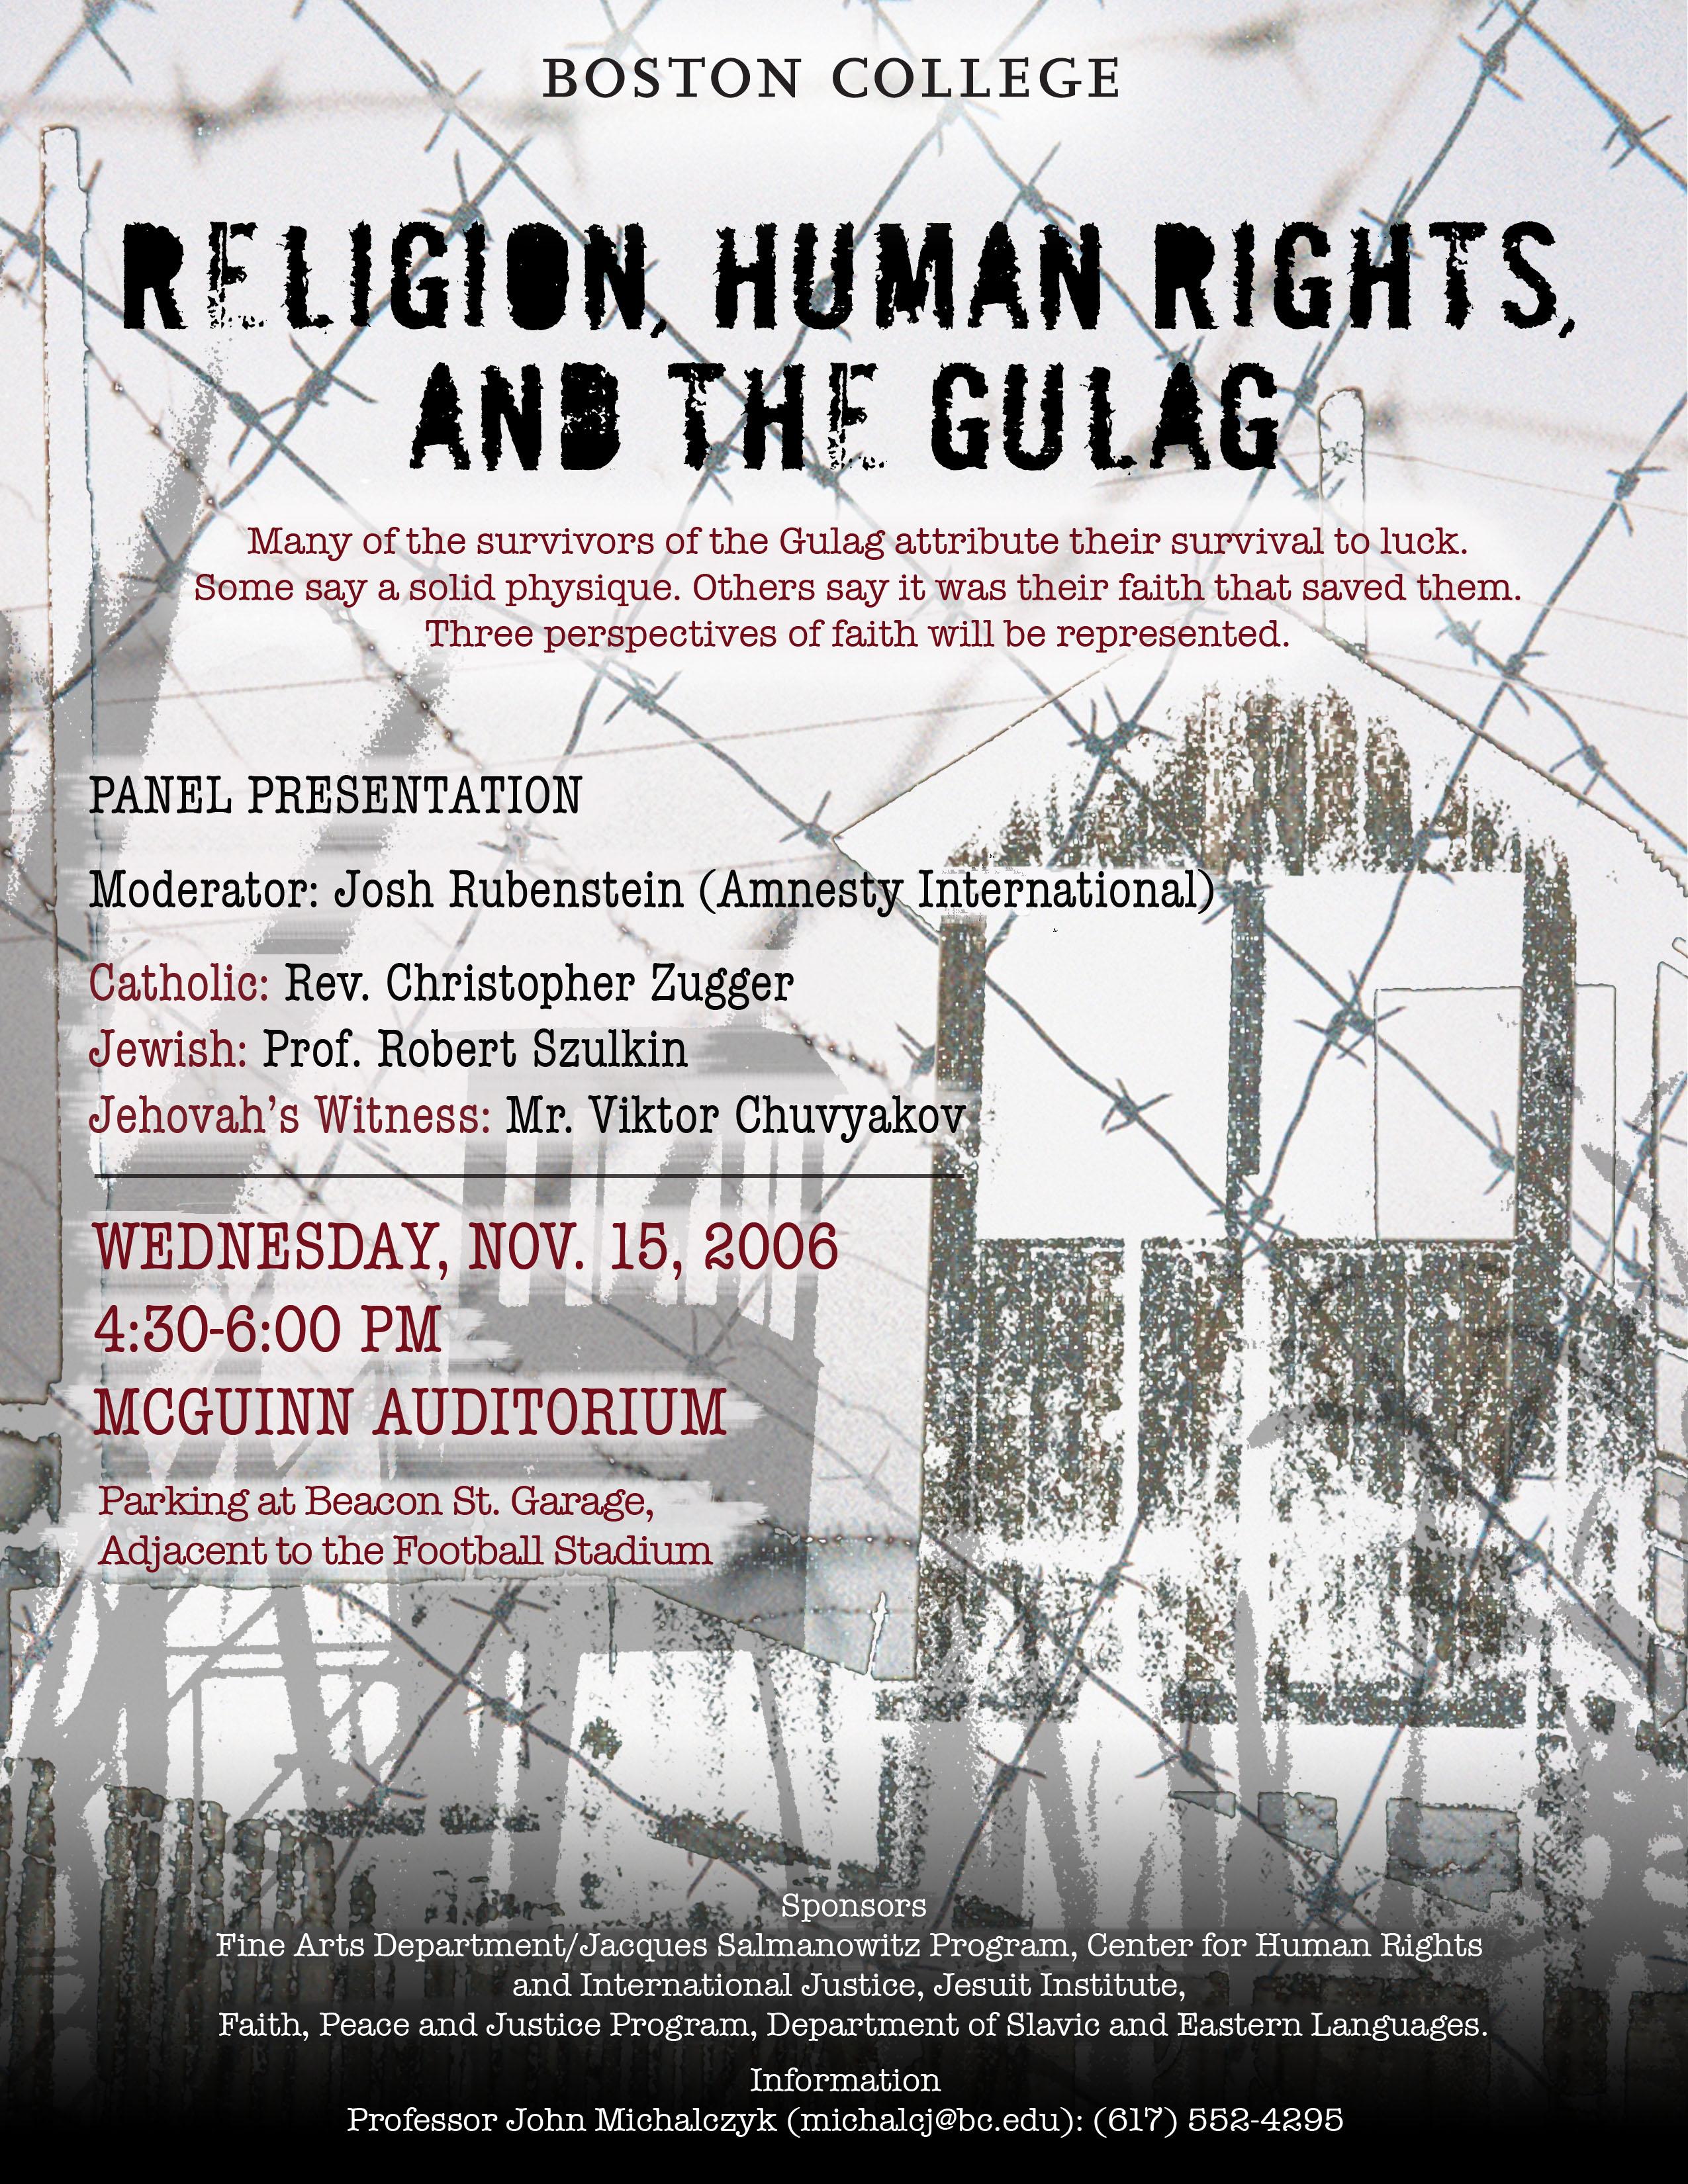 Promotional Poster: Religion, Human Rights, and the Gulag